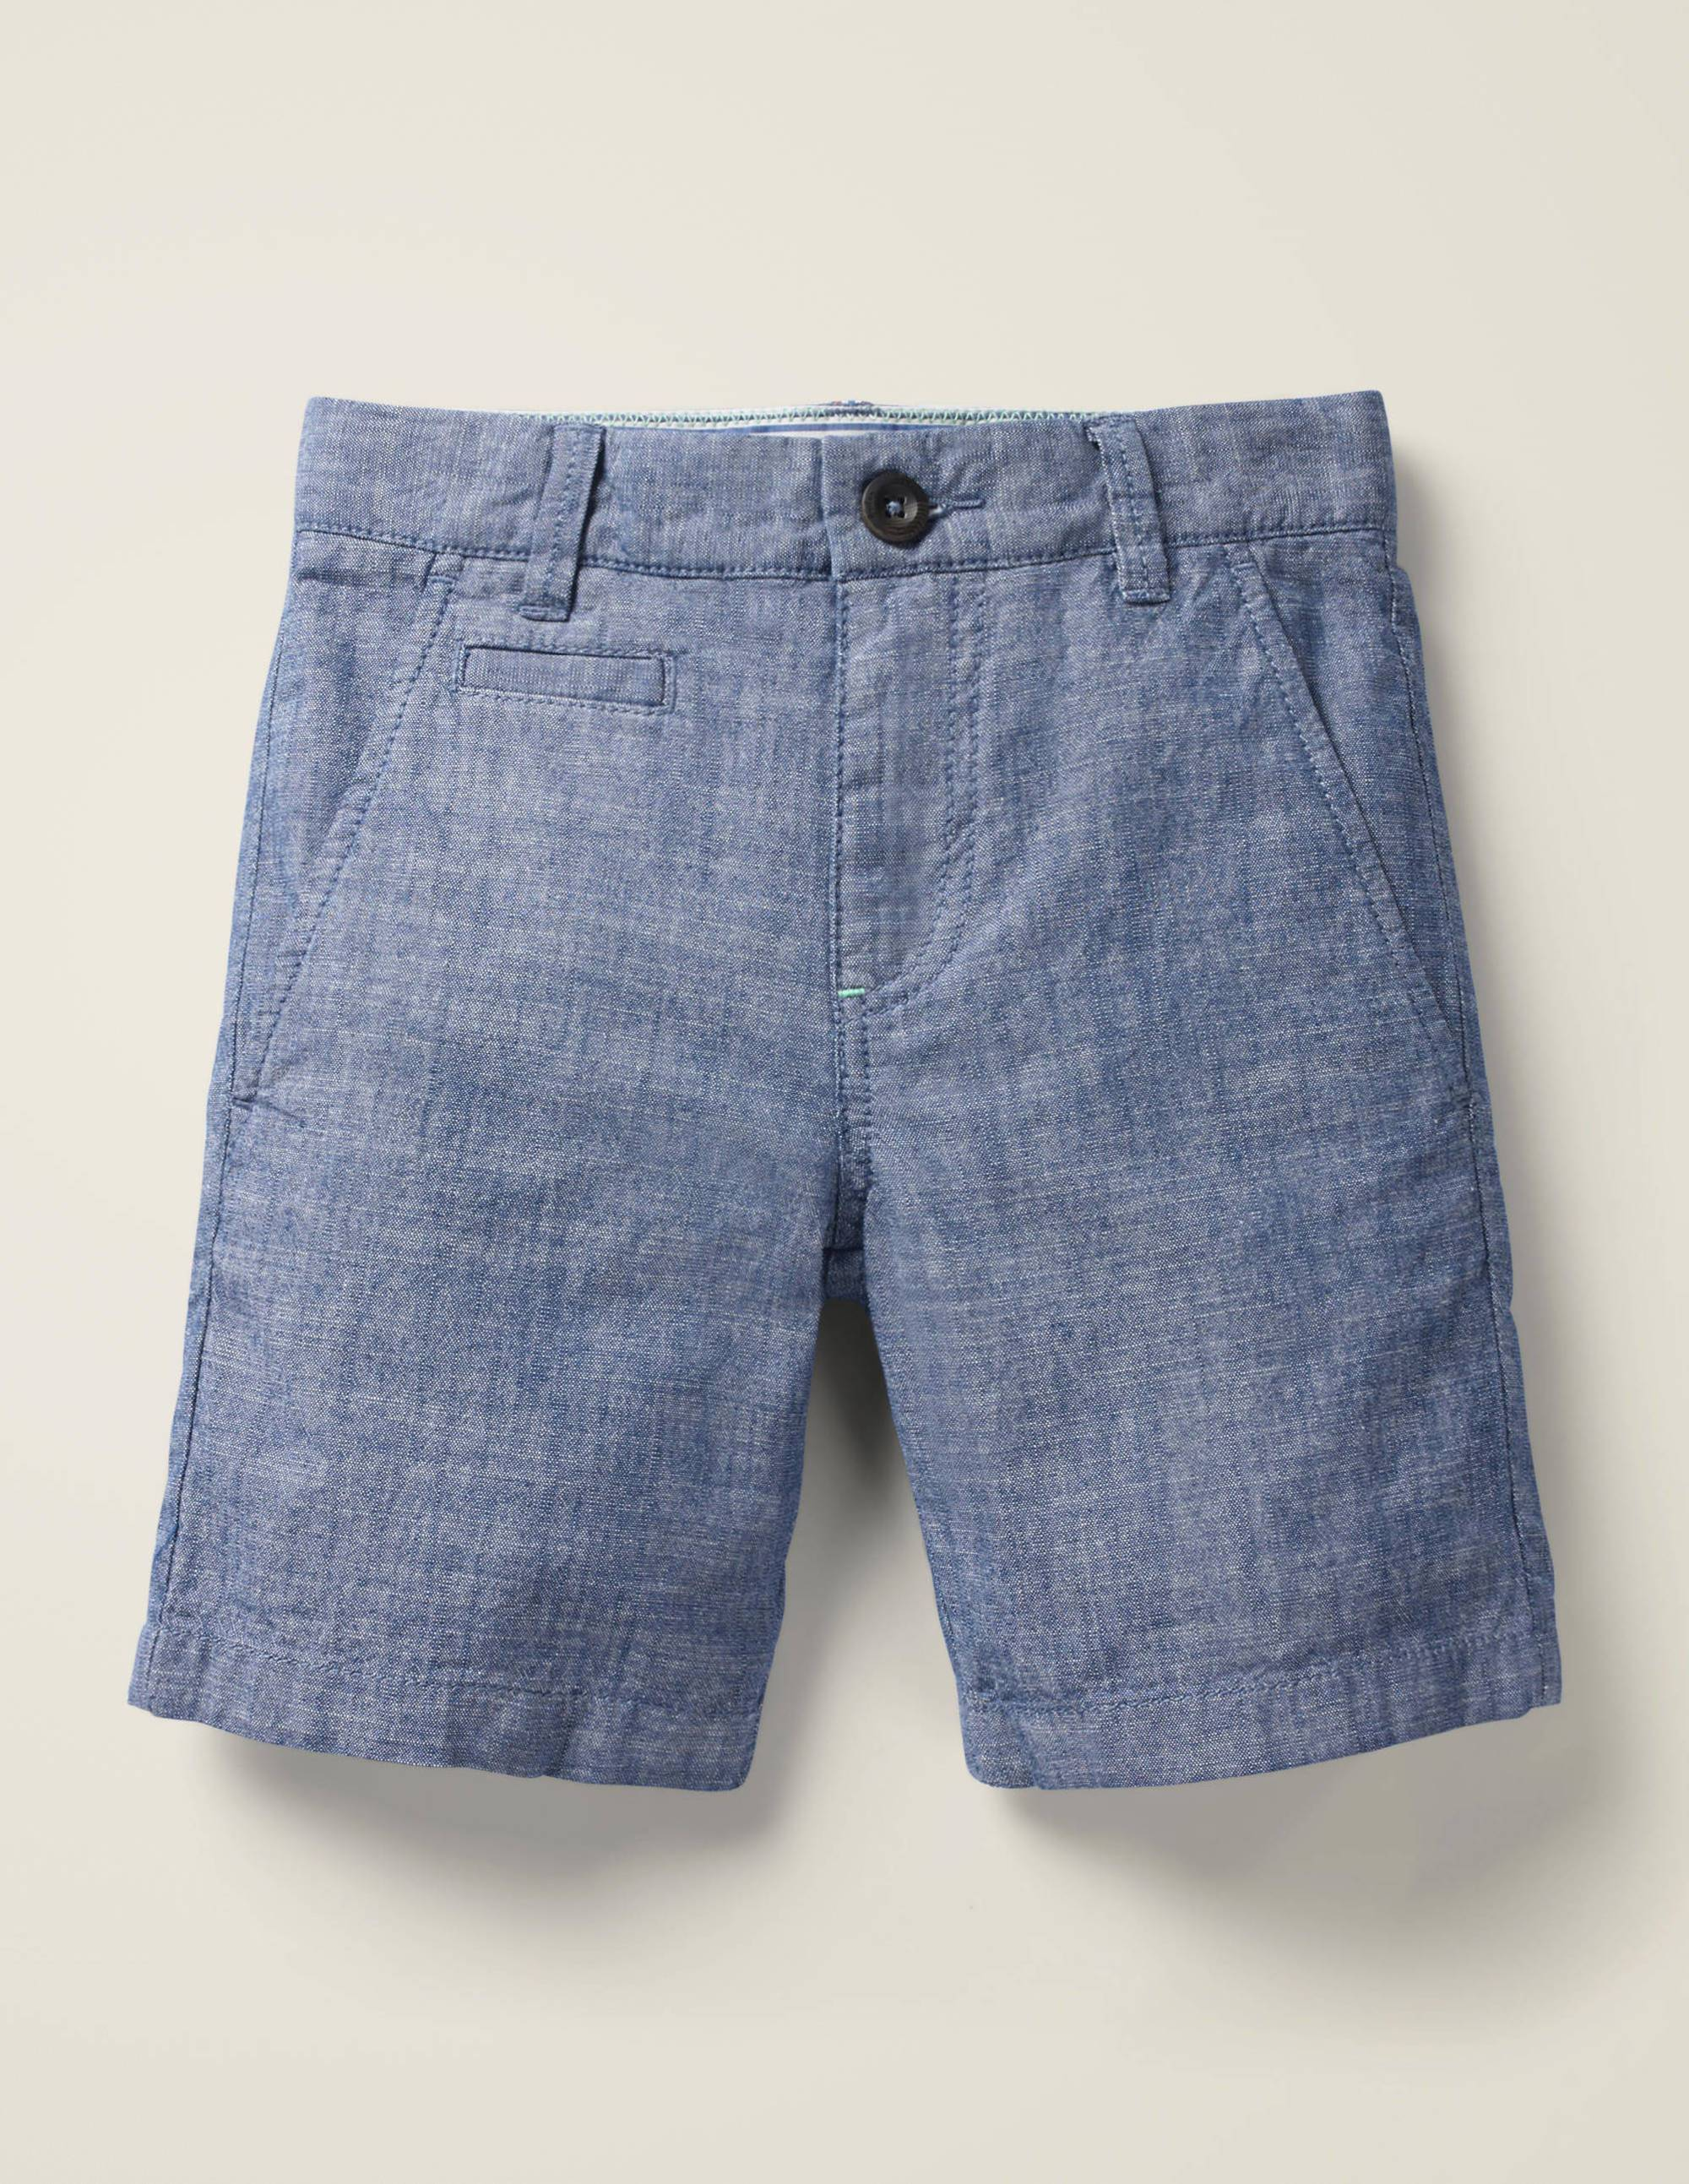 Mini Short chino MDN Femme Boden, Chambray - 6a